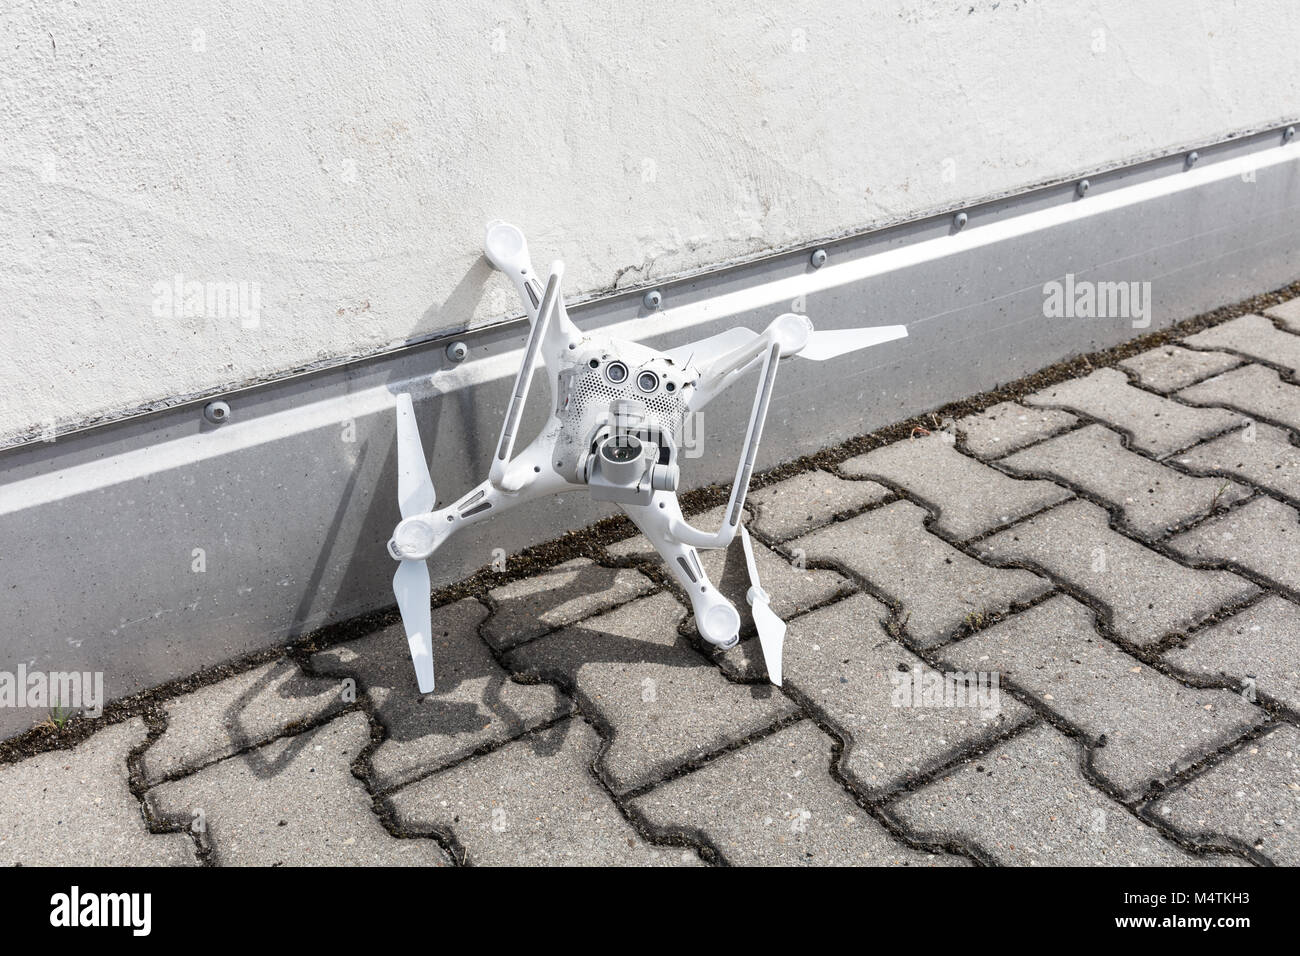 High angle view of broken drone on footpath - Stock Image